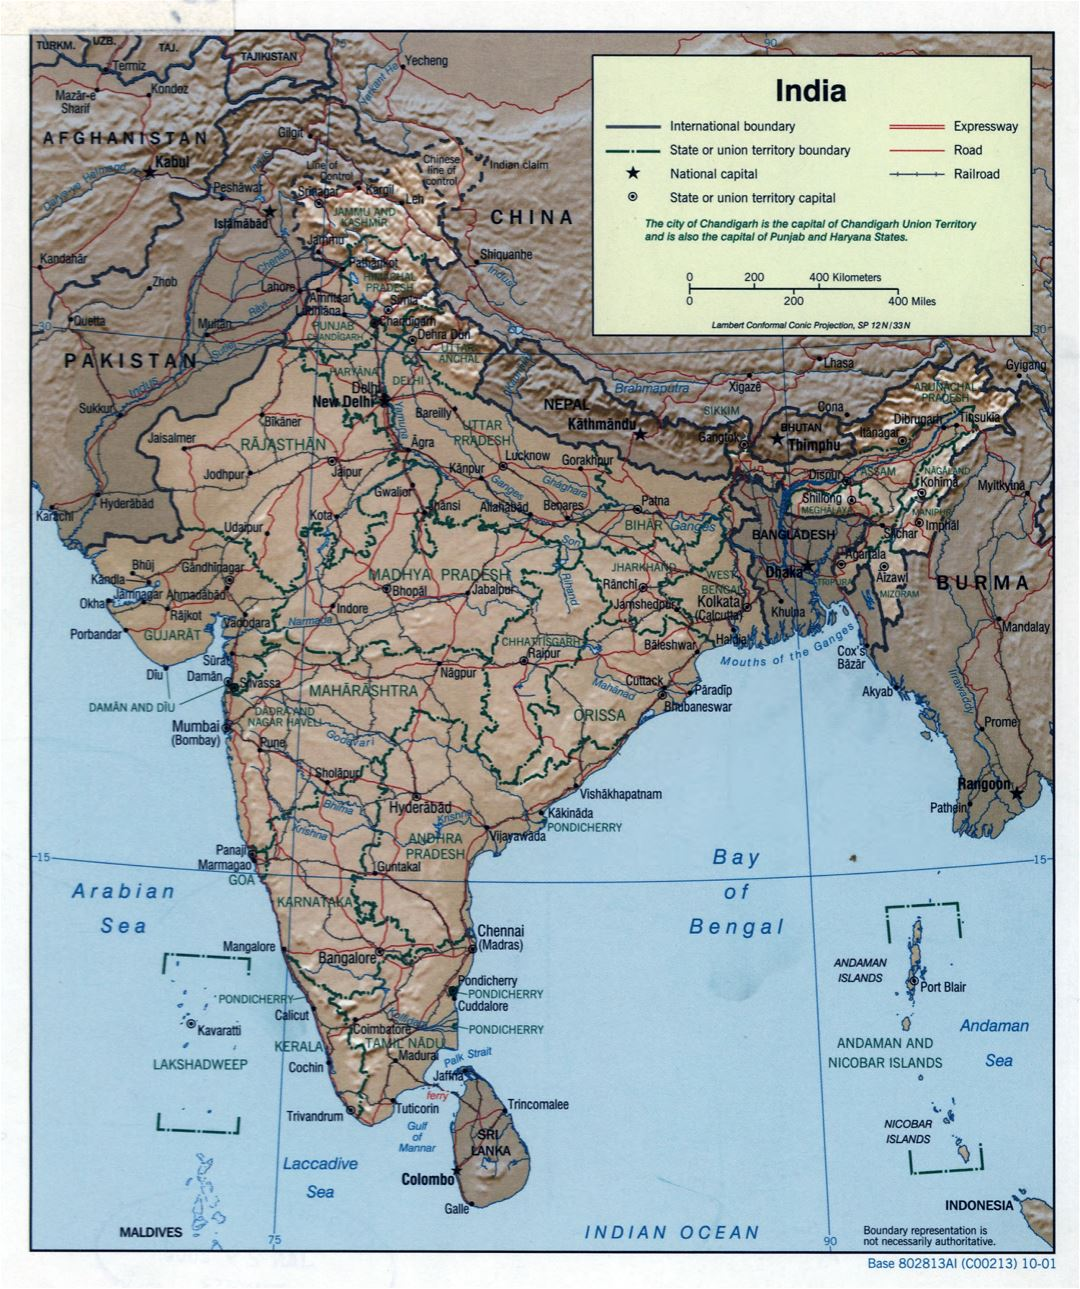 Large scale political and administrative map of India with relief, roads, railroads and major cities - 2001